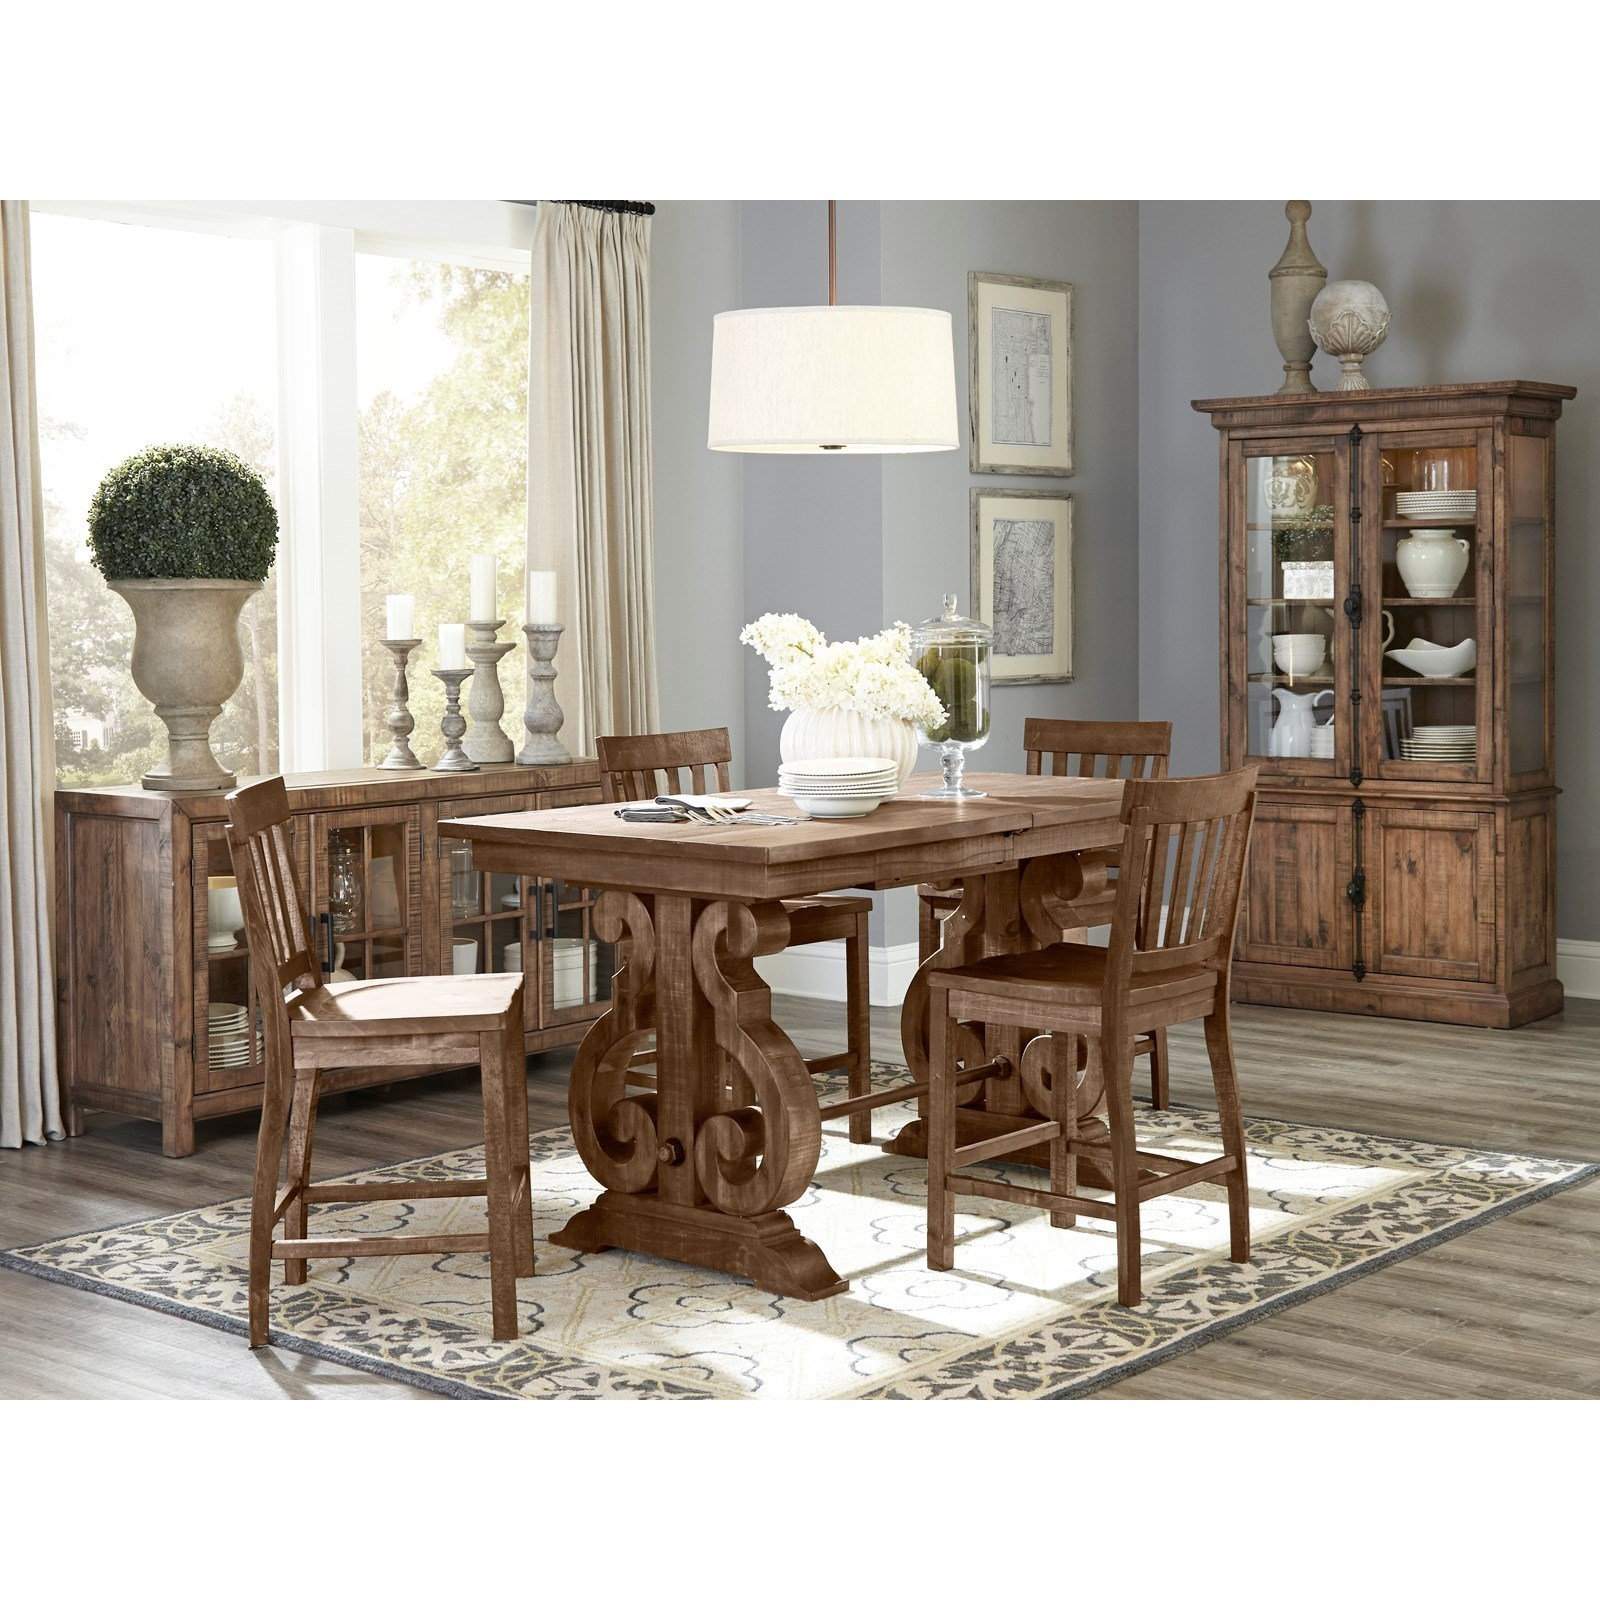 Willoughby Casual Dining Room Group by Magnussen Home at Dunk & Bright Furniture